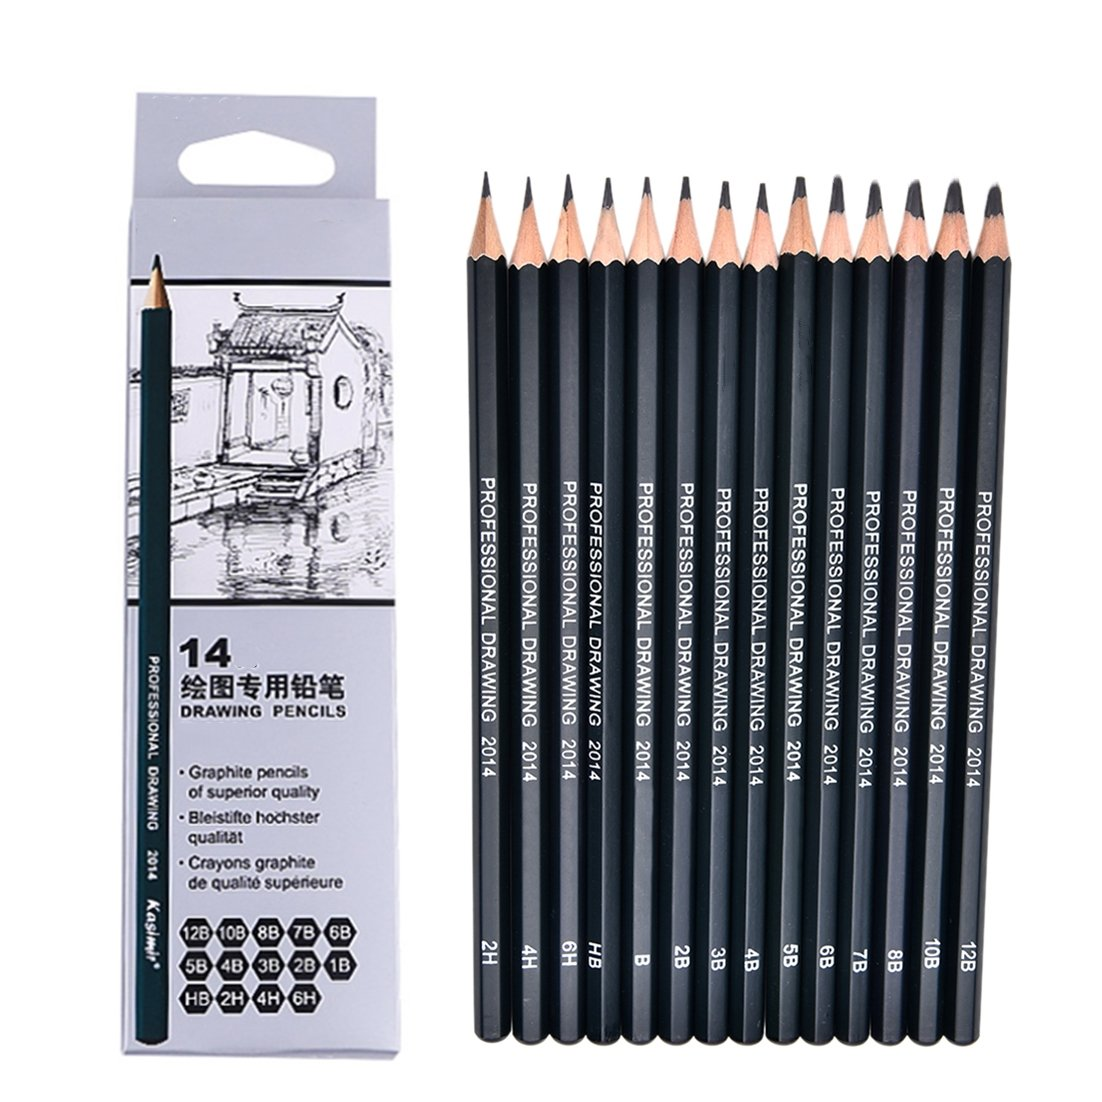 Eshylala 1 set 14 pcs wooden professional drawing pencil student sketch pencil stationery supplies for drawingcarpentercrafting art sketchin 6h4h2hhb